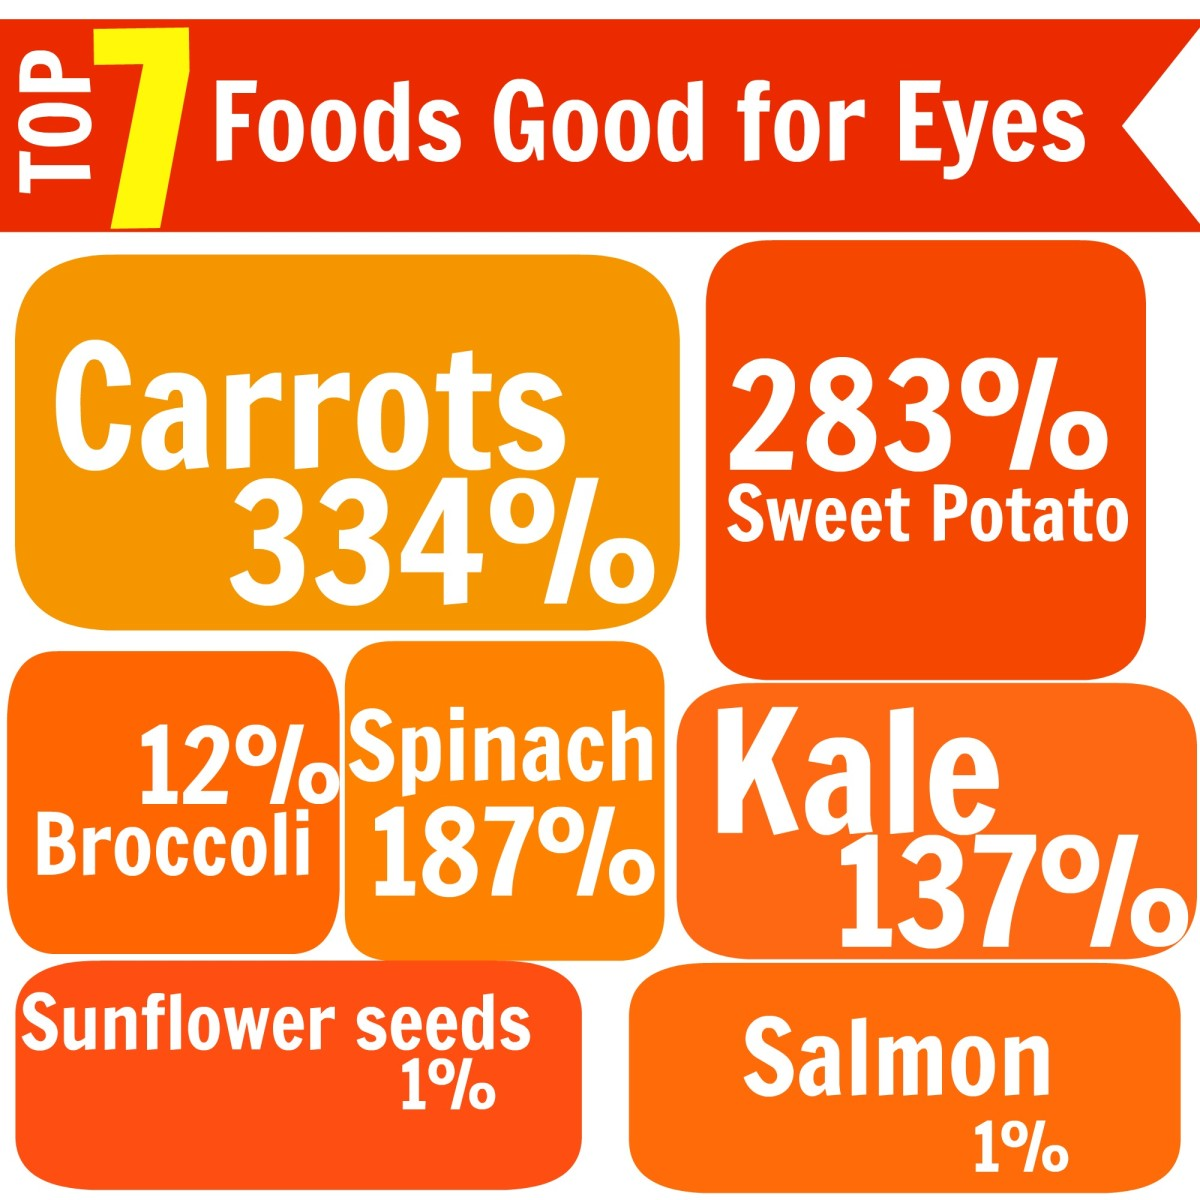 These are the best 7 foods rich in Vitamin A, good for eye health. The percentage values denote the percentage daily values recommended per person for Vitamin A (Retinol).